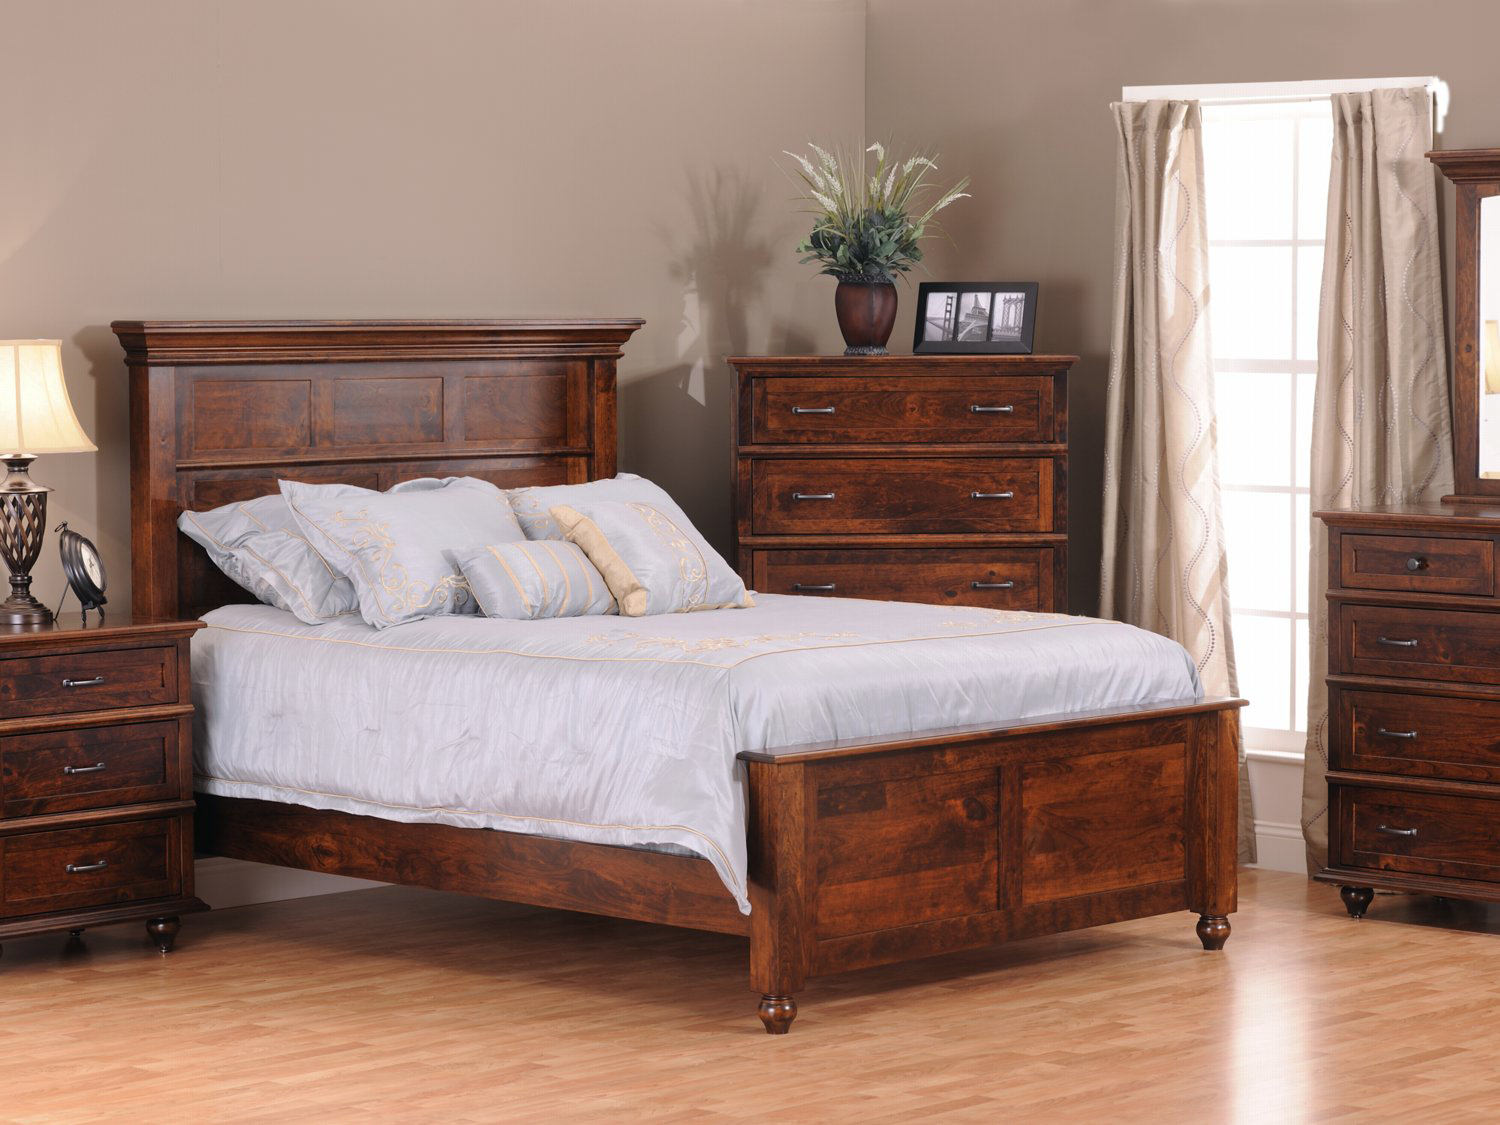 Springfield solid knotty cherry bedroom by amish craftsmen hom furniture - Amish bedroom furniture ...